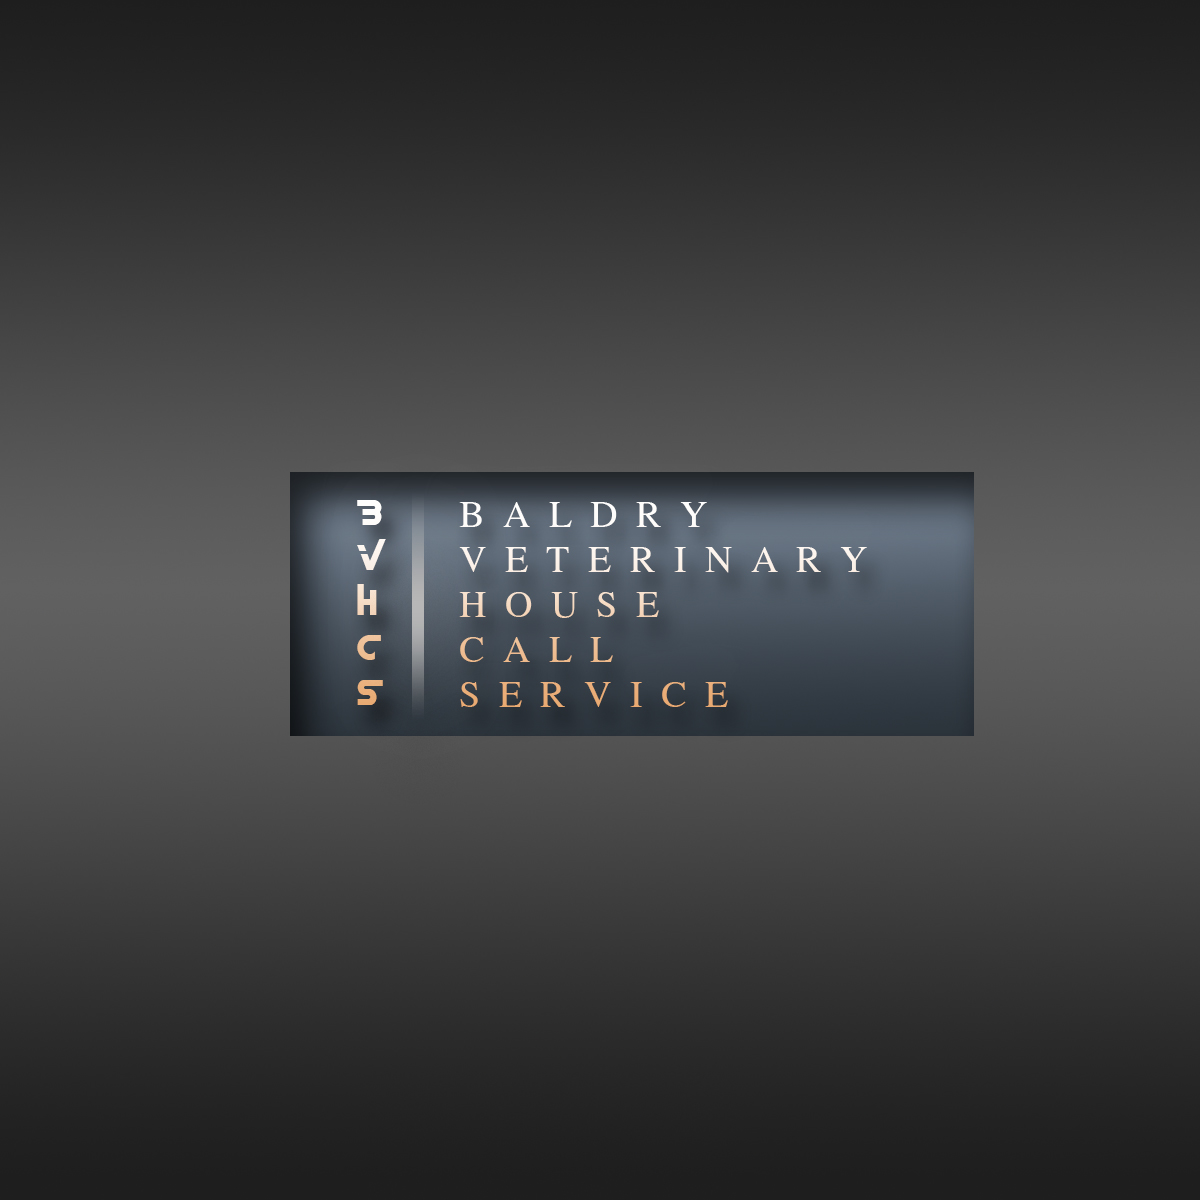 Logo Design by Viral Ramani - Entry No. 2 in the Logo Design Contest Captivating Logo Design for Baldry Veterinary House Call Service.